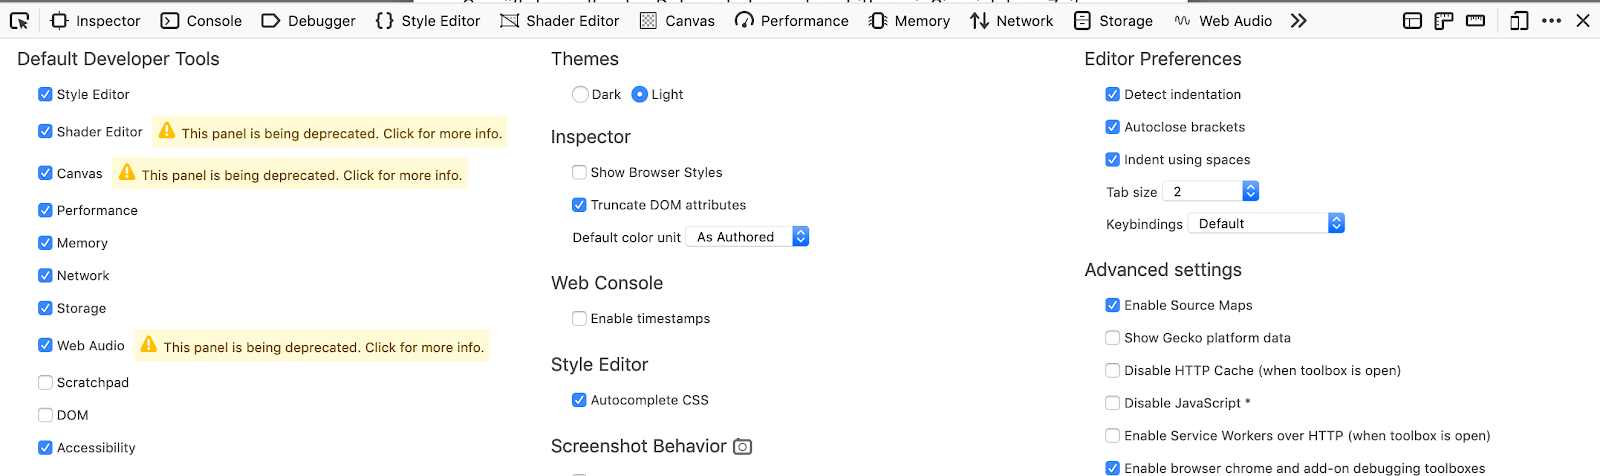 Warnings being displayed next to various panel toggles in the DevTools Settings panel, letting users know that these panels are deprecated.